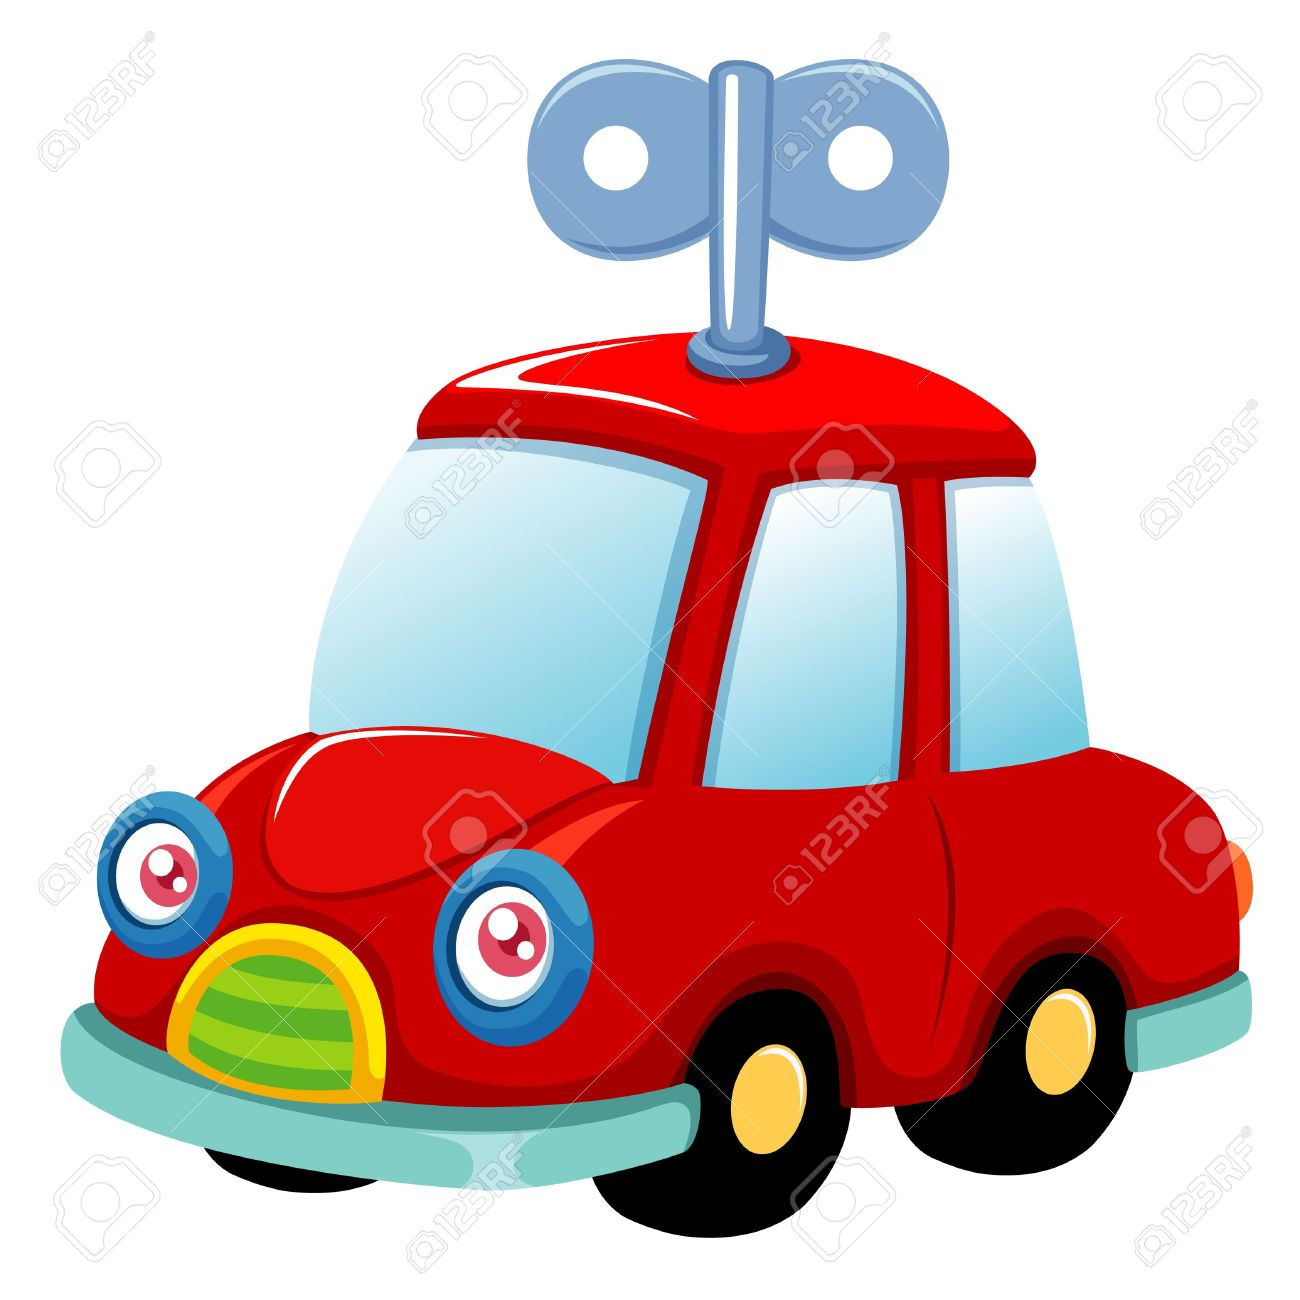 Toy cars free download. Clipart toys matchbox car